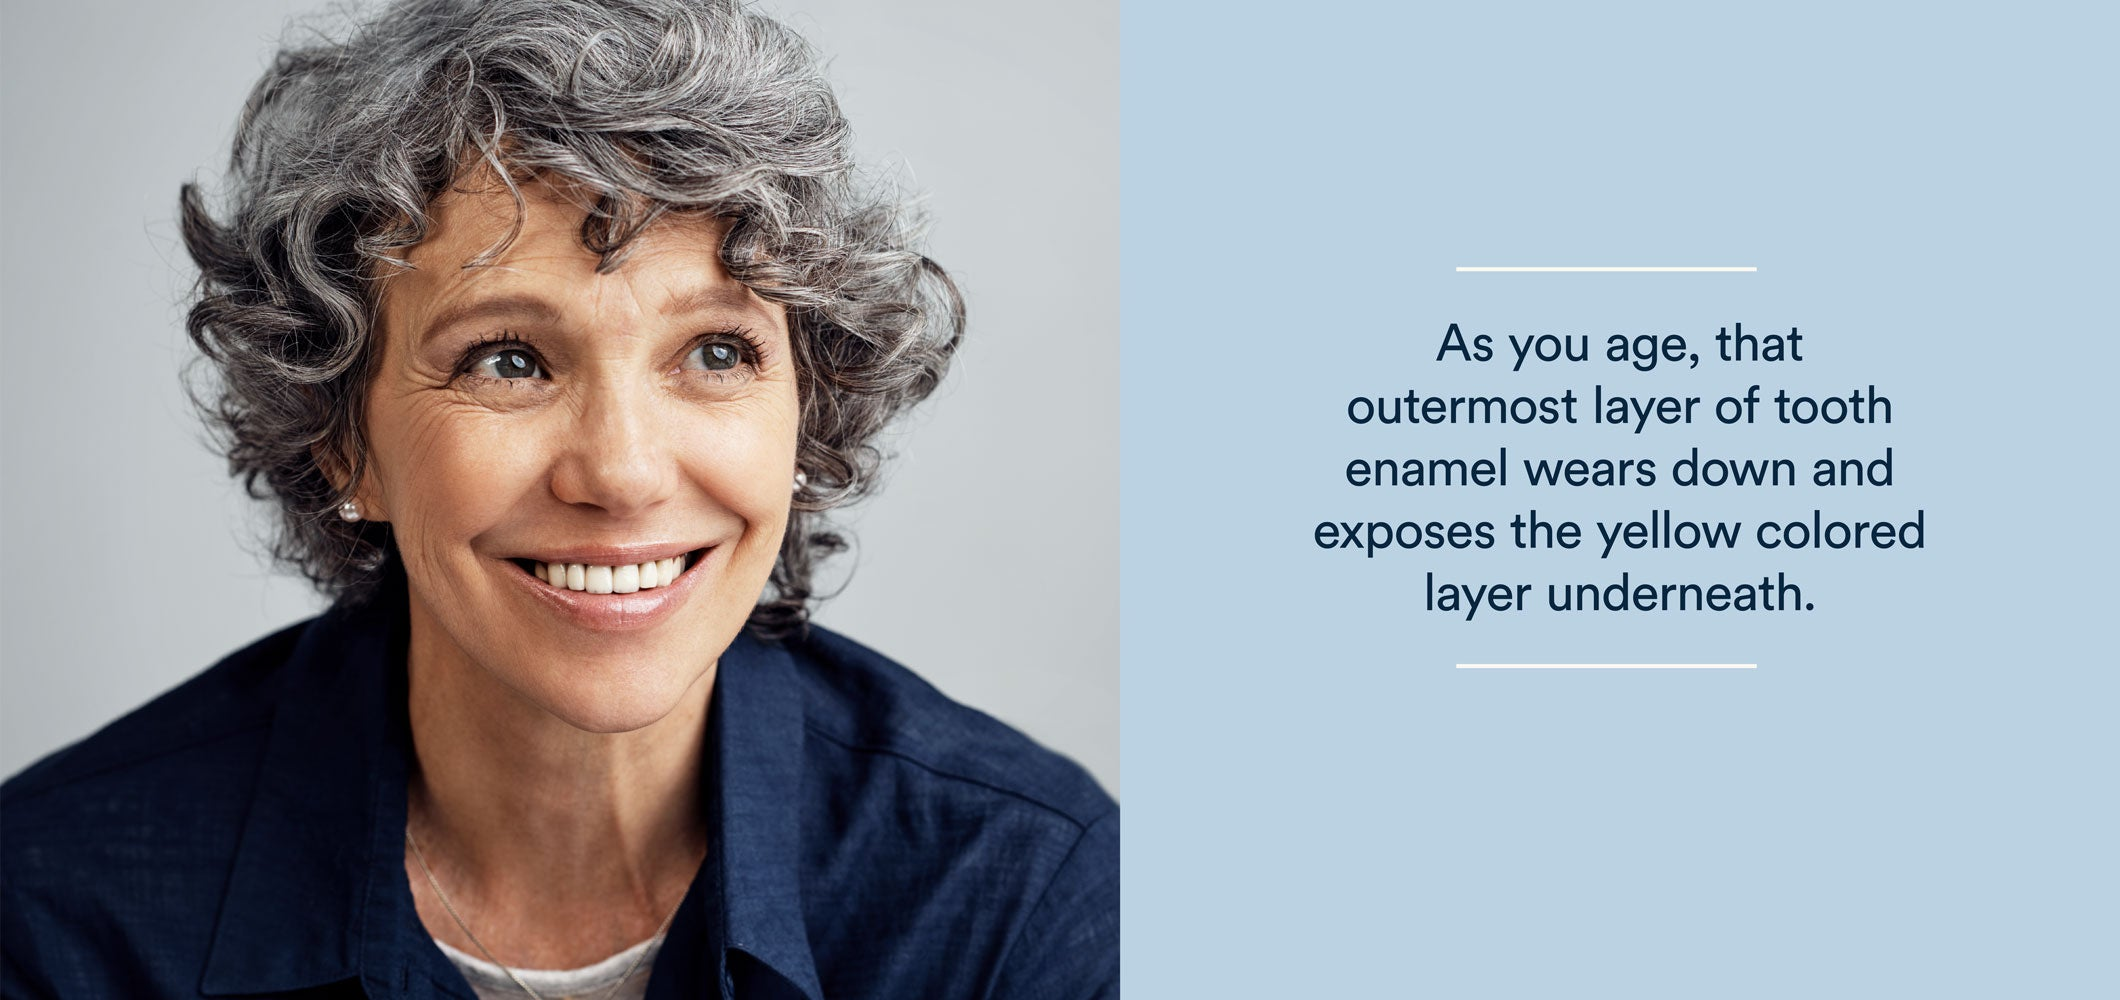 as you age, that outermost layer of tooth enamel wears down and exposes the yellow colored layer underneath